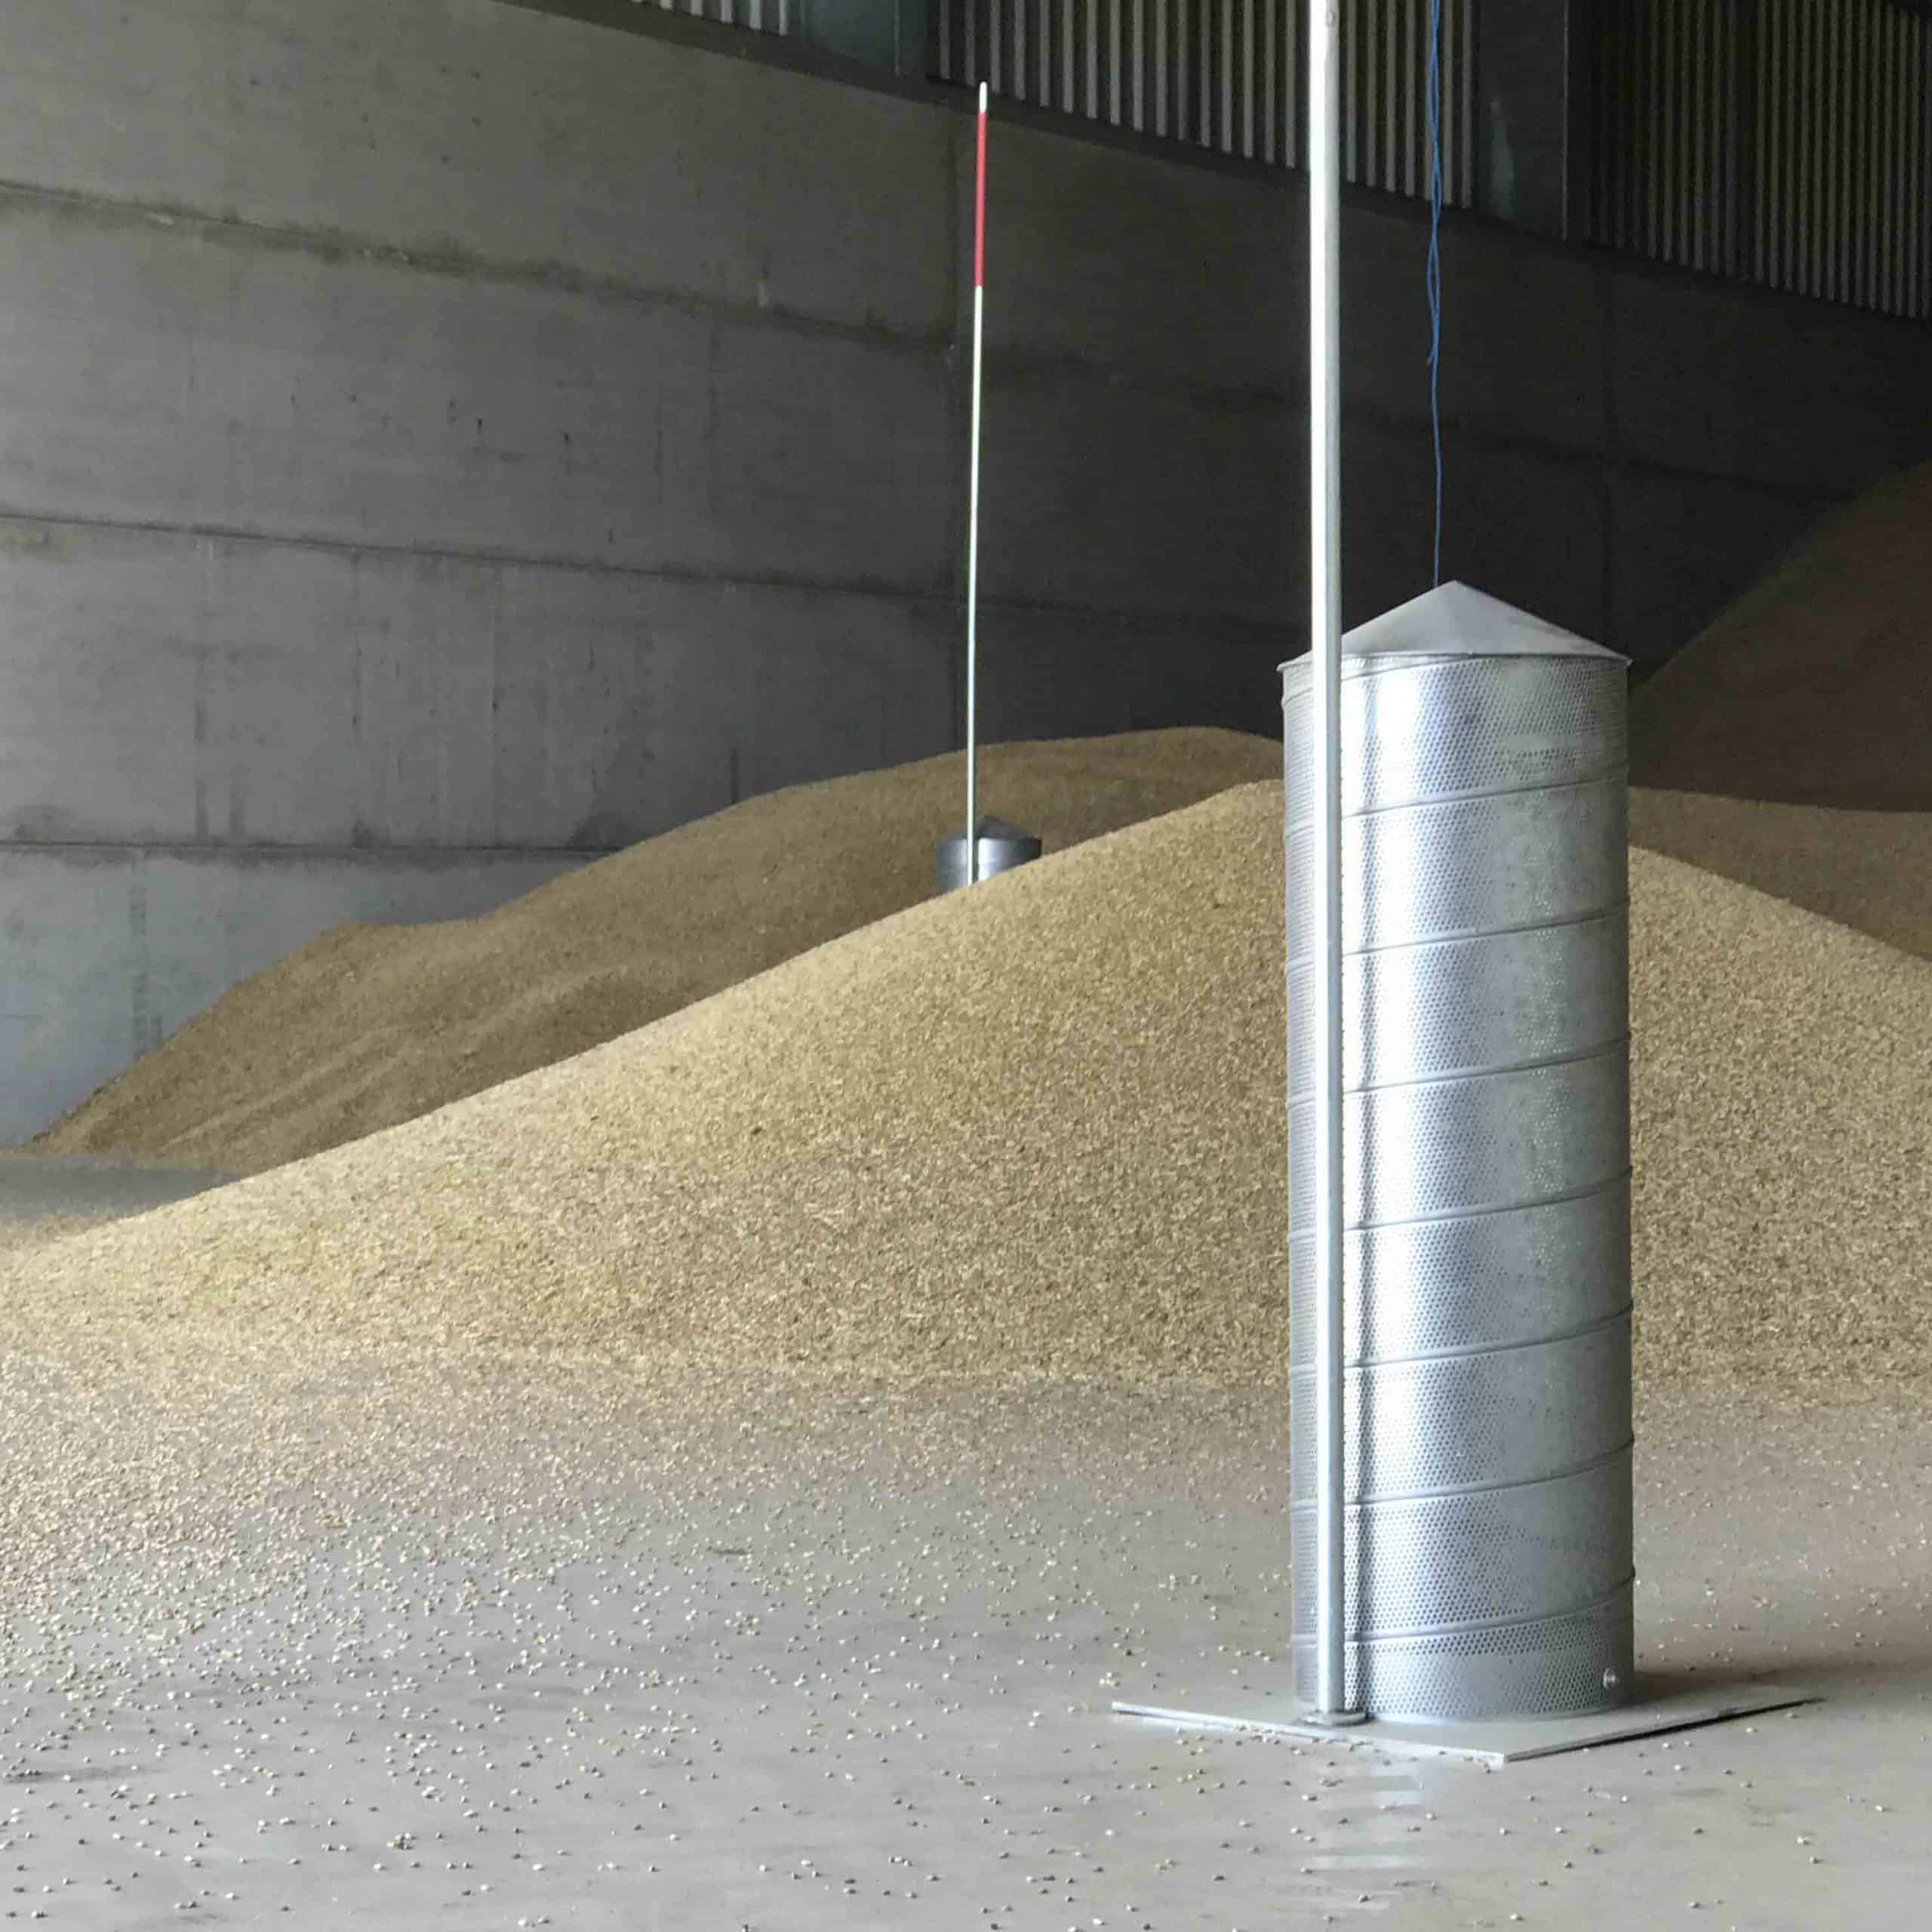 FloorVent under floor ventilation system offers grain store versatility